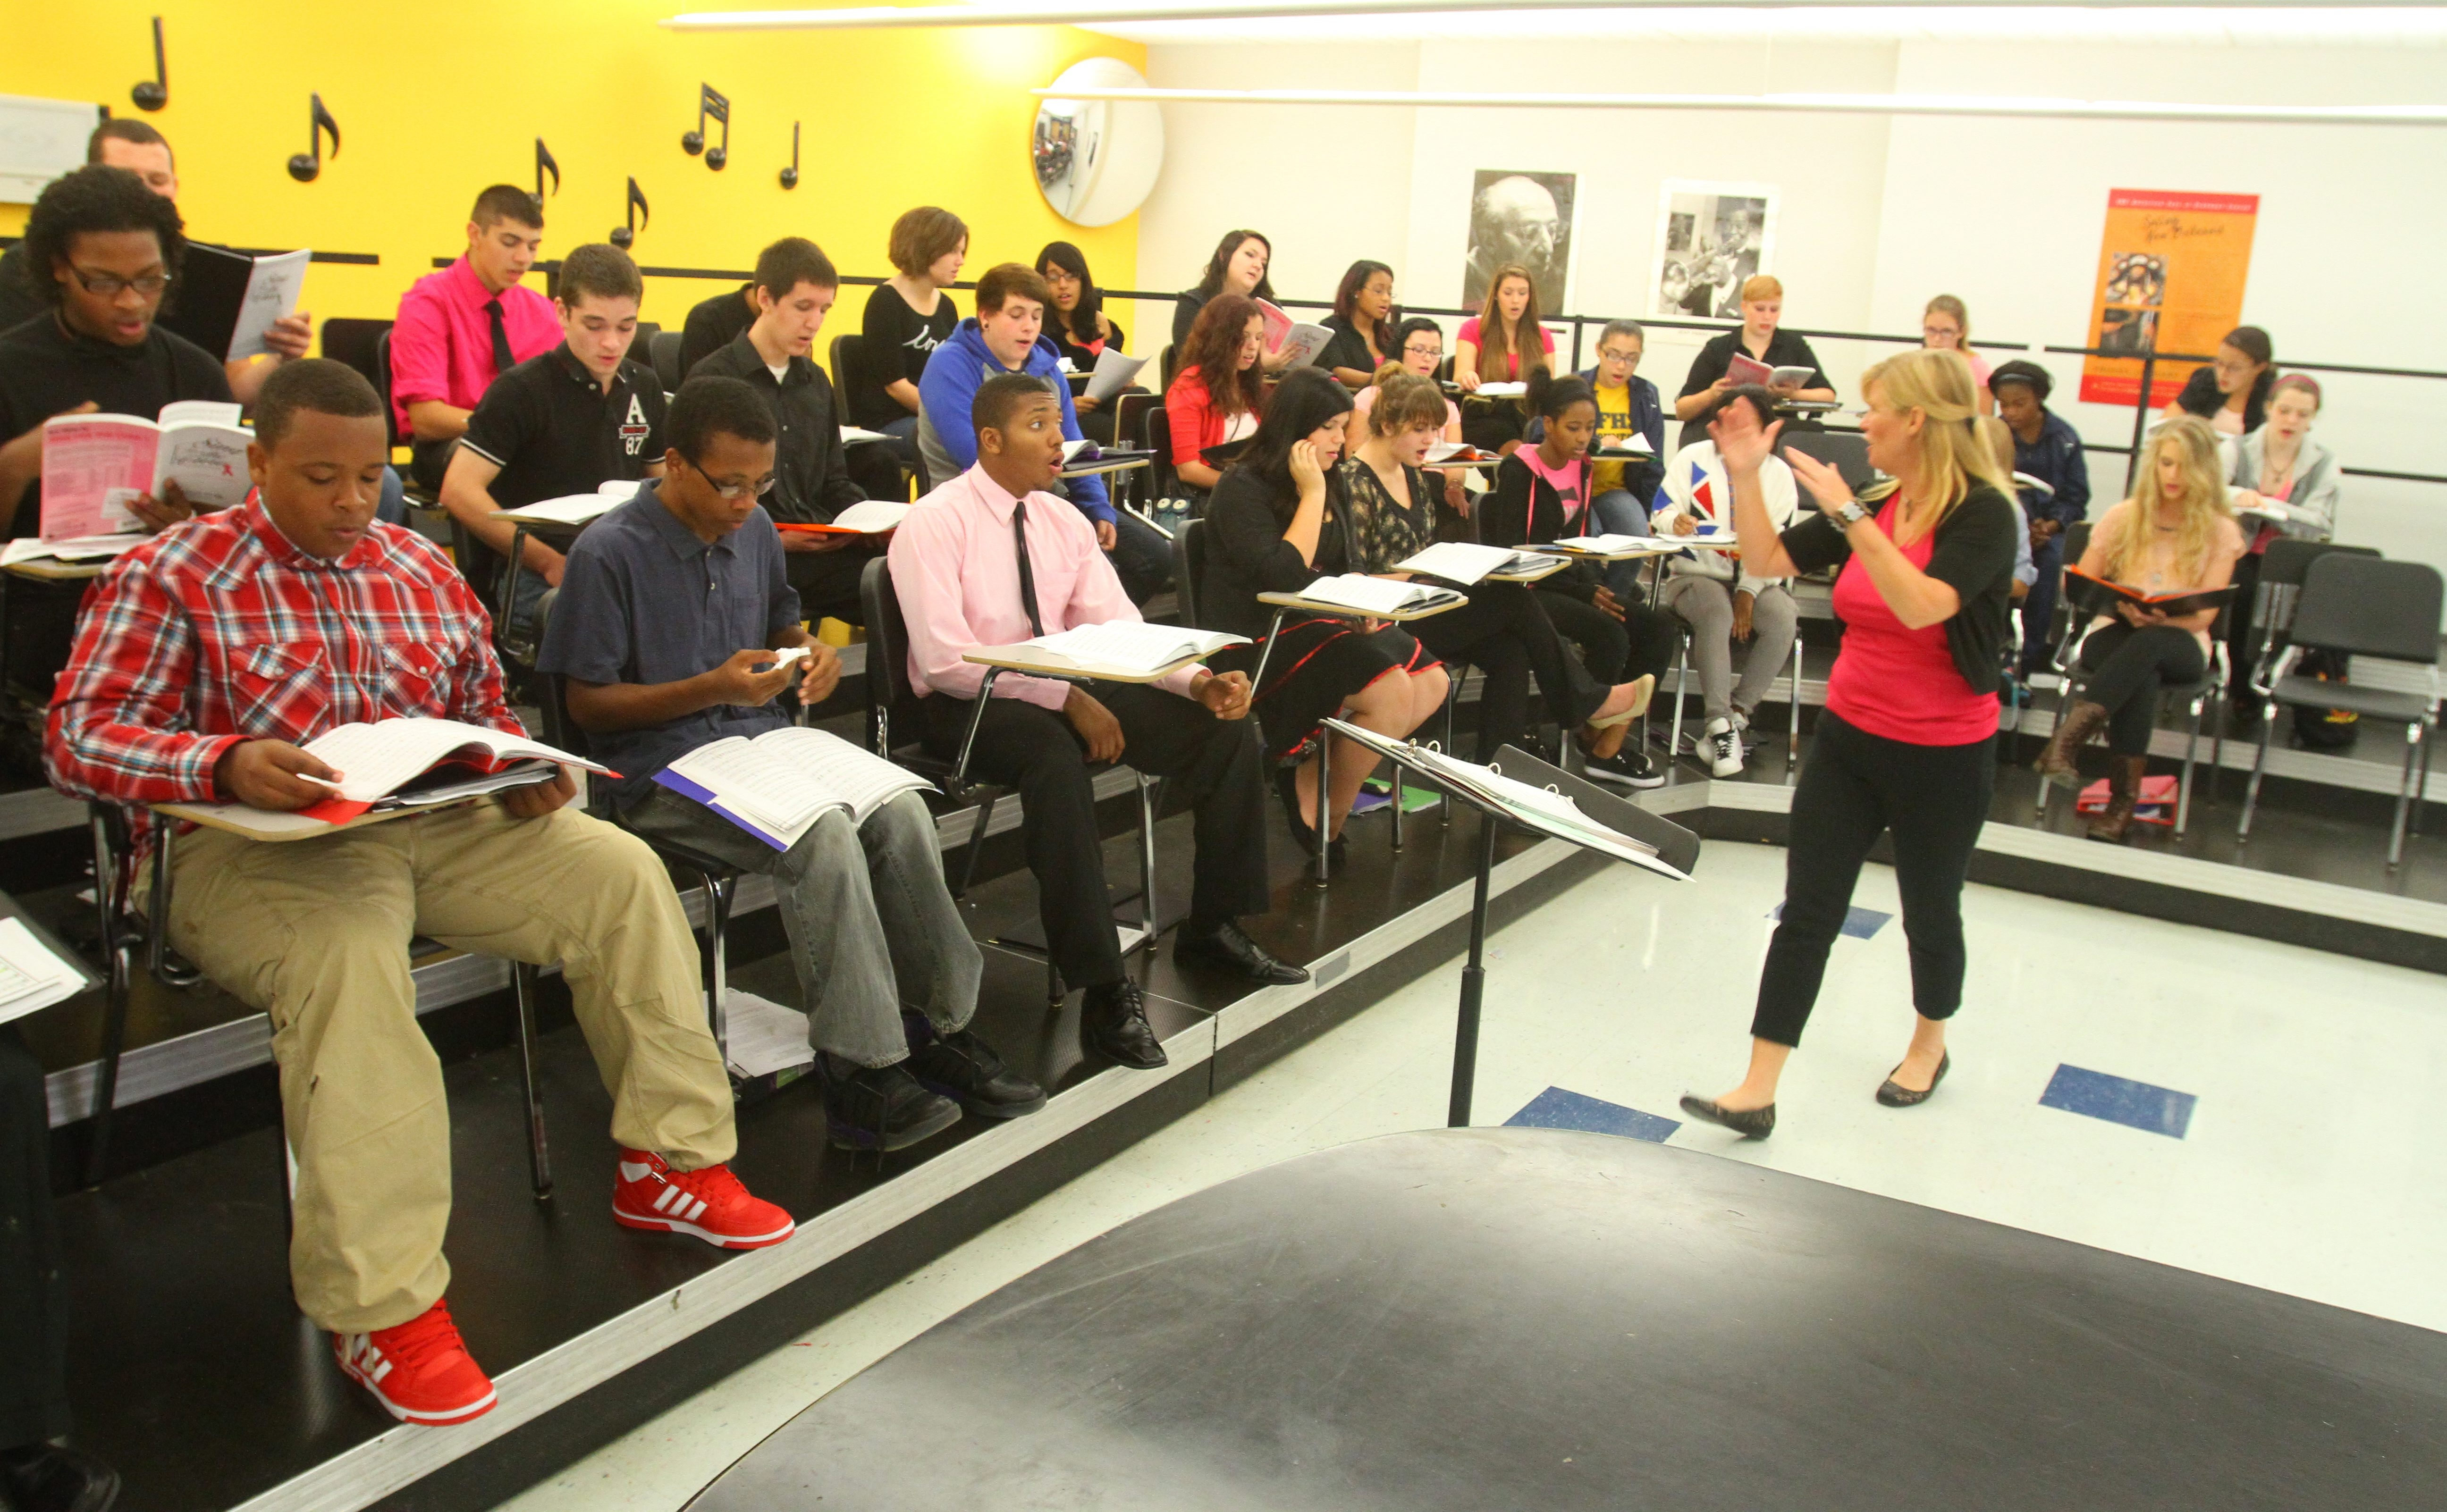 Linda Werder, choir director at Niagara Falls High School, prepares students for Wednesday evening's concert to raise funds for Breast Cancer Network of WNY. Claudia Andres is doing the same at Wilson for Thursday performance there.